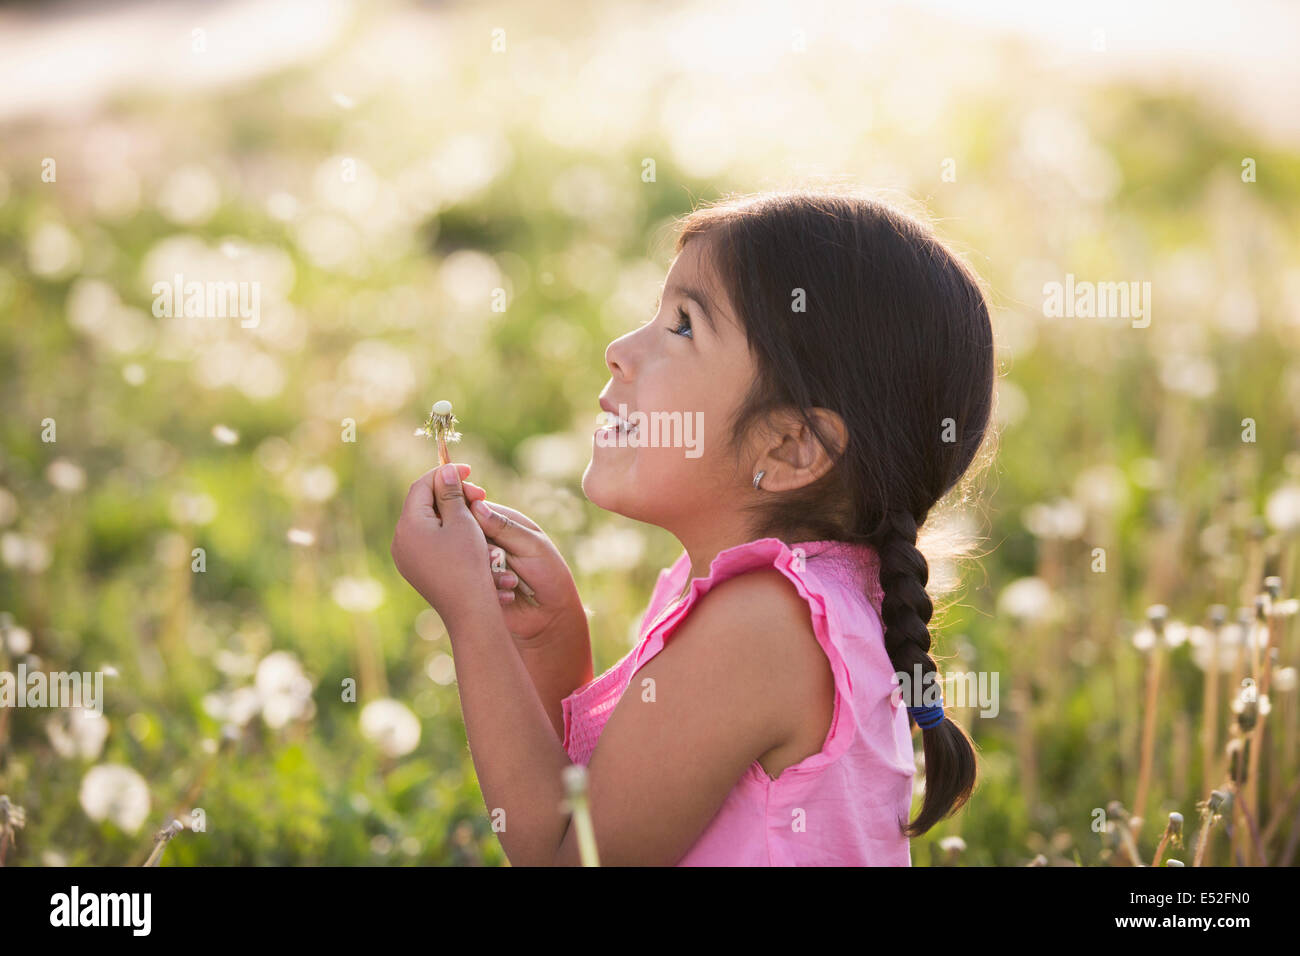 A young child in a field of flowers, blowing the fluffy seeds off a dandelion seedhead clock. - Stock Image